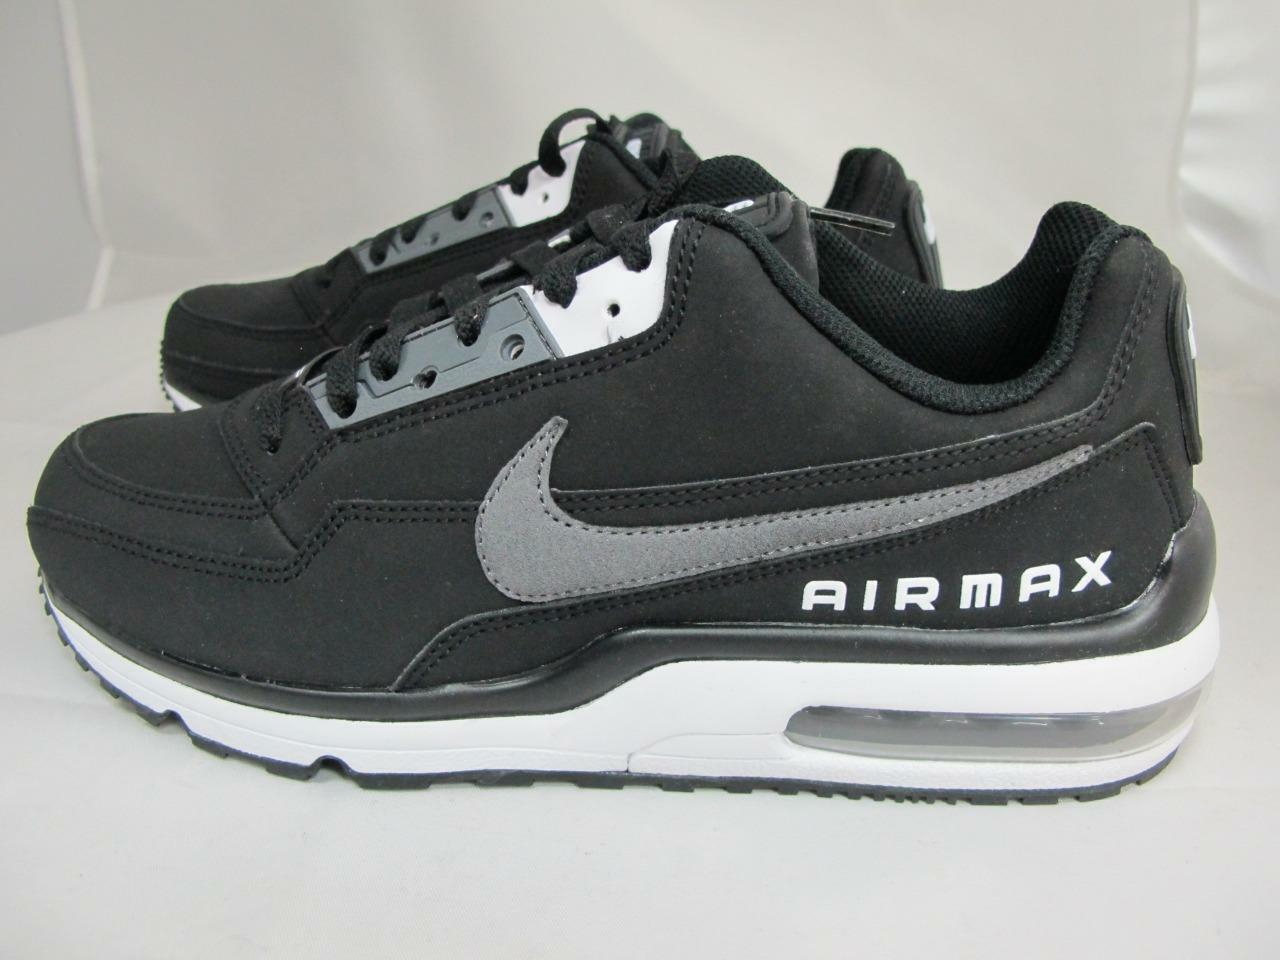 NEW uomo uomo uomo NIKE AIR MAX LTD 3 687977-011 bb0433